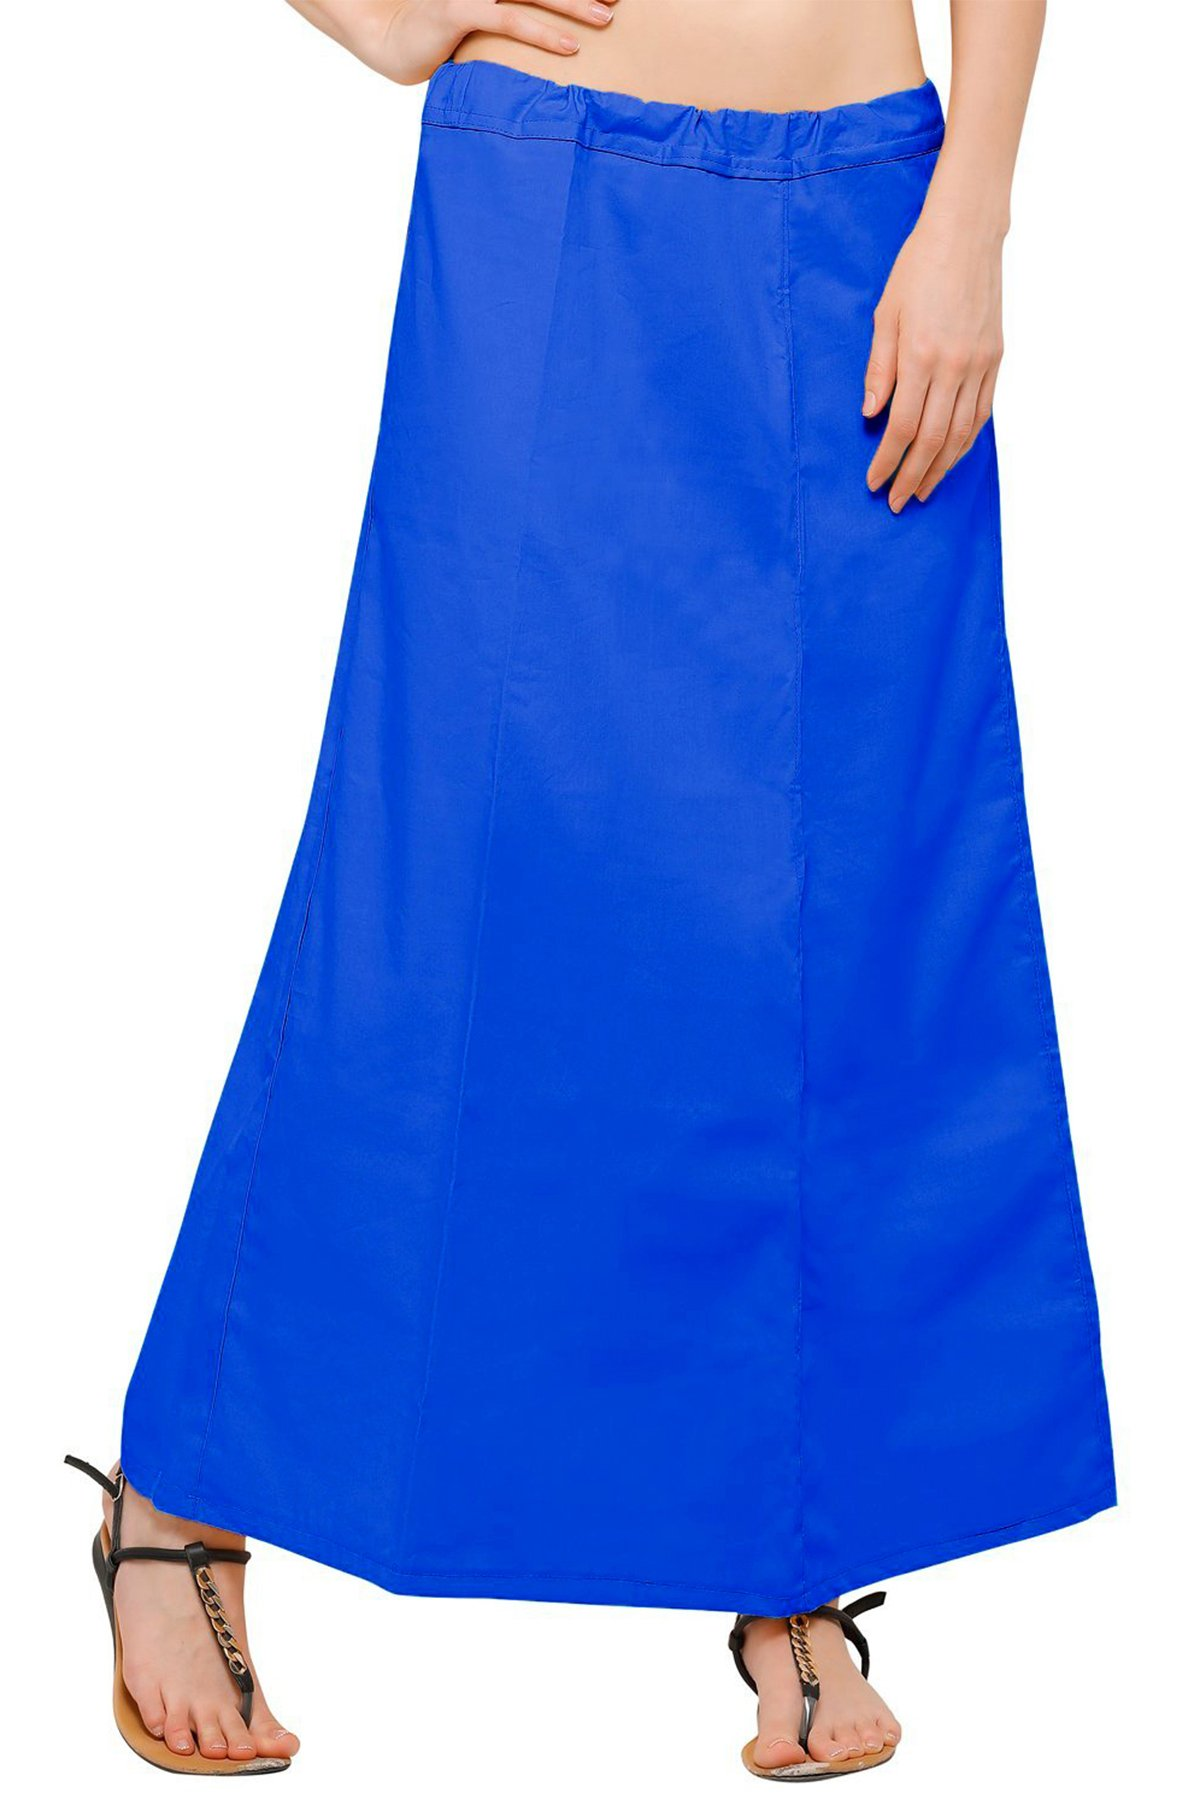 Chandrakala Women's Readymade Cotton Floor Length Free Size Petticoat Underskirt Slips for Indian Sarees(P104BLU4)